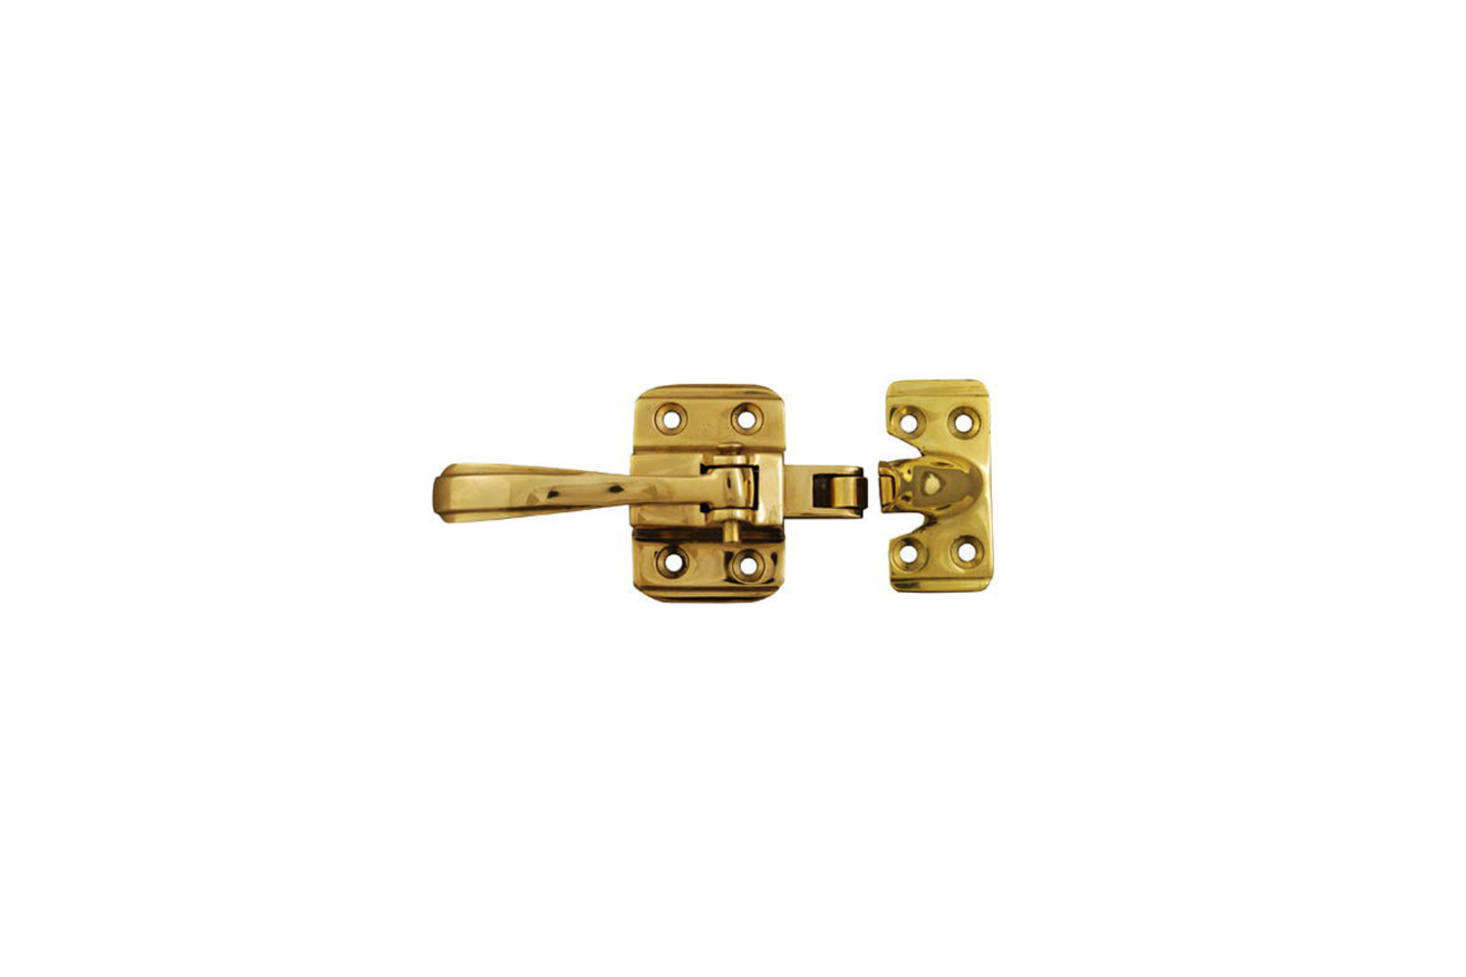 From The Golden Lion, theIce Box Latch MI-30 is made in France and available in polished brass (shown), polished chrome, polished nickel, and antiqued brass; $6.80.